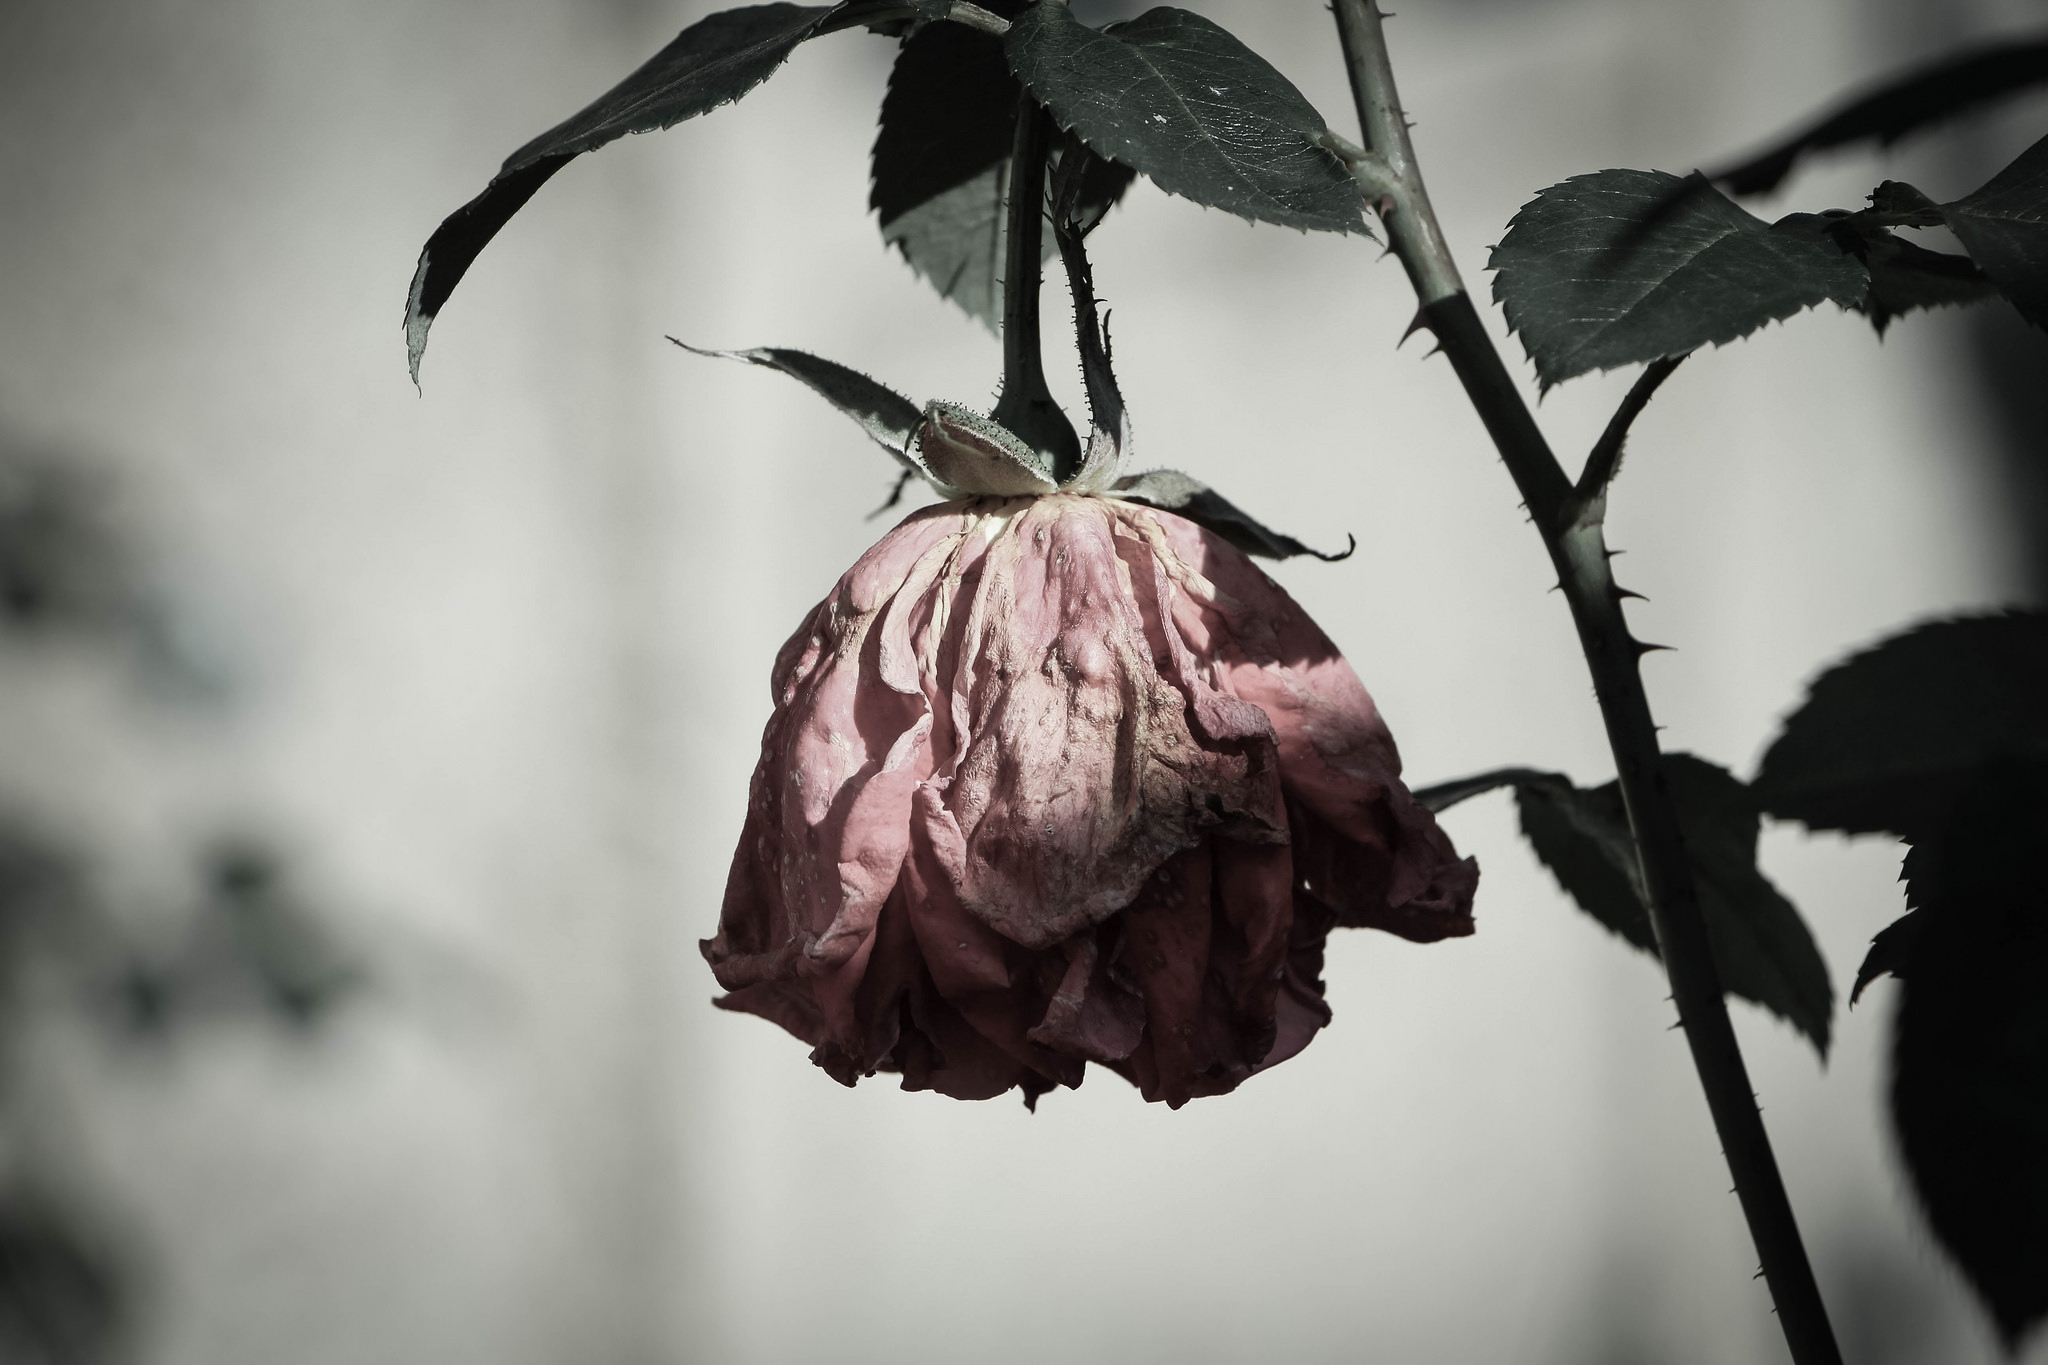 Depressed Rose image - attribution Tobias Wrzal (royalty free)